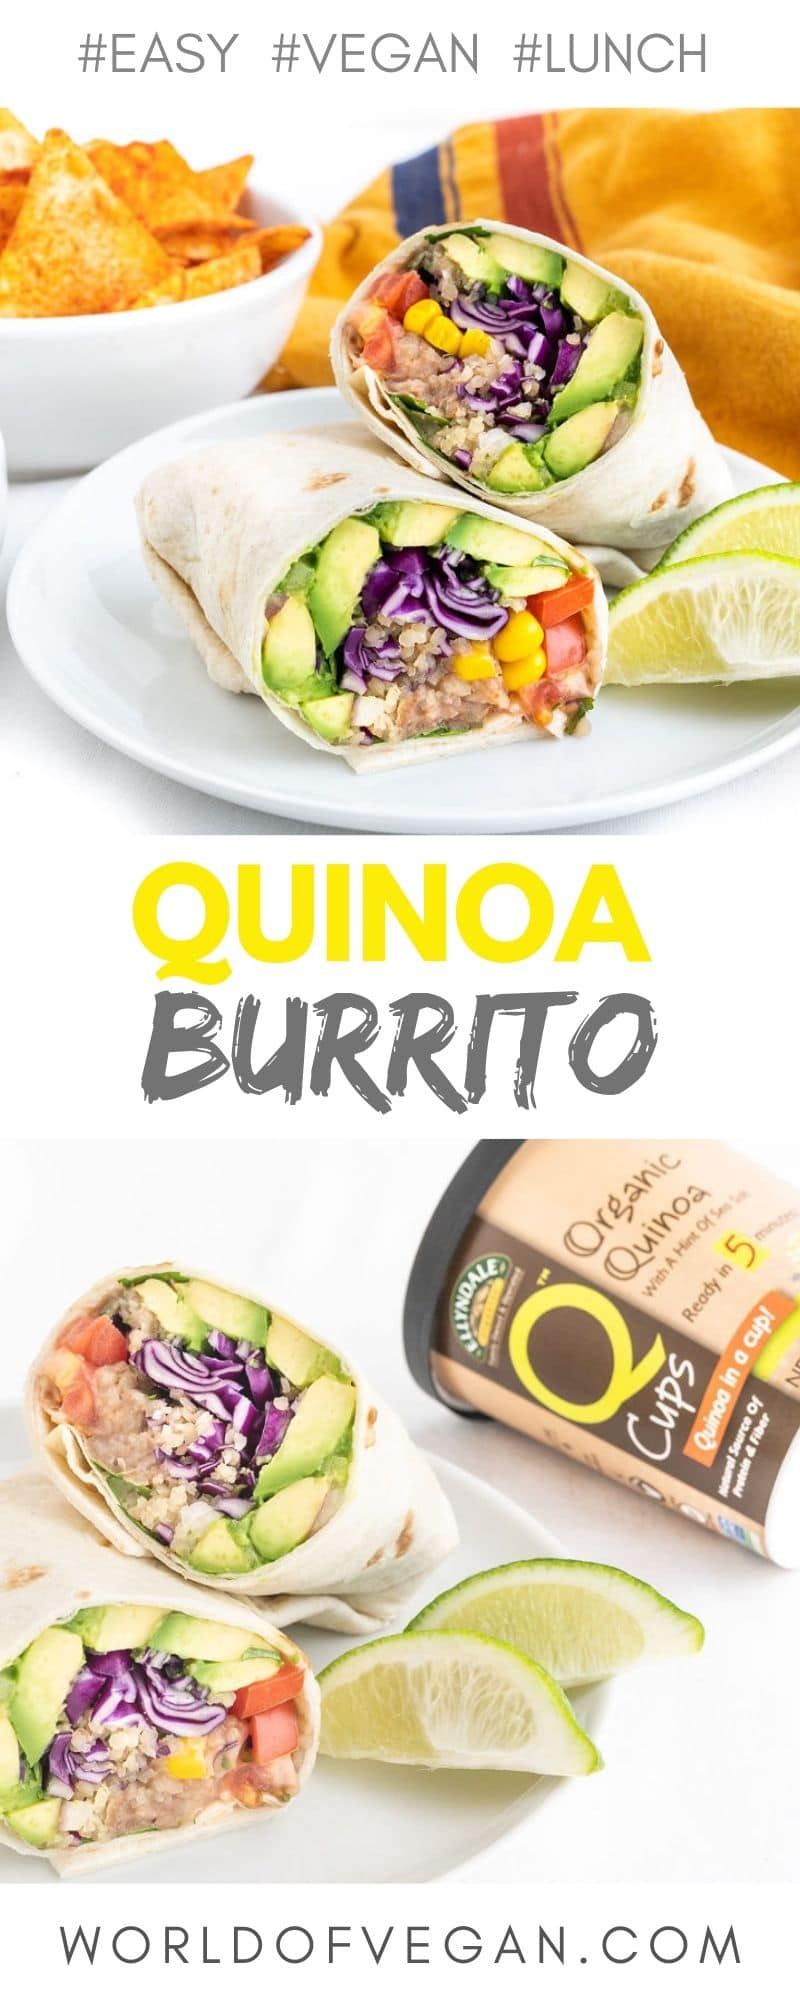 Easy Vegan Burrito | WorldofVegan.com #vegan #vegetarian #healthy #lunch #burrito #mexican